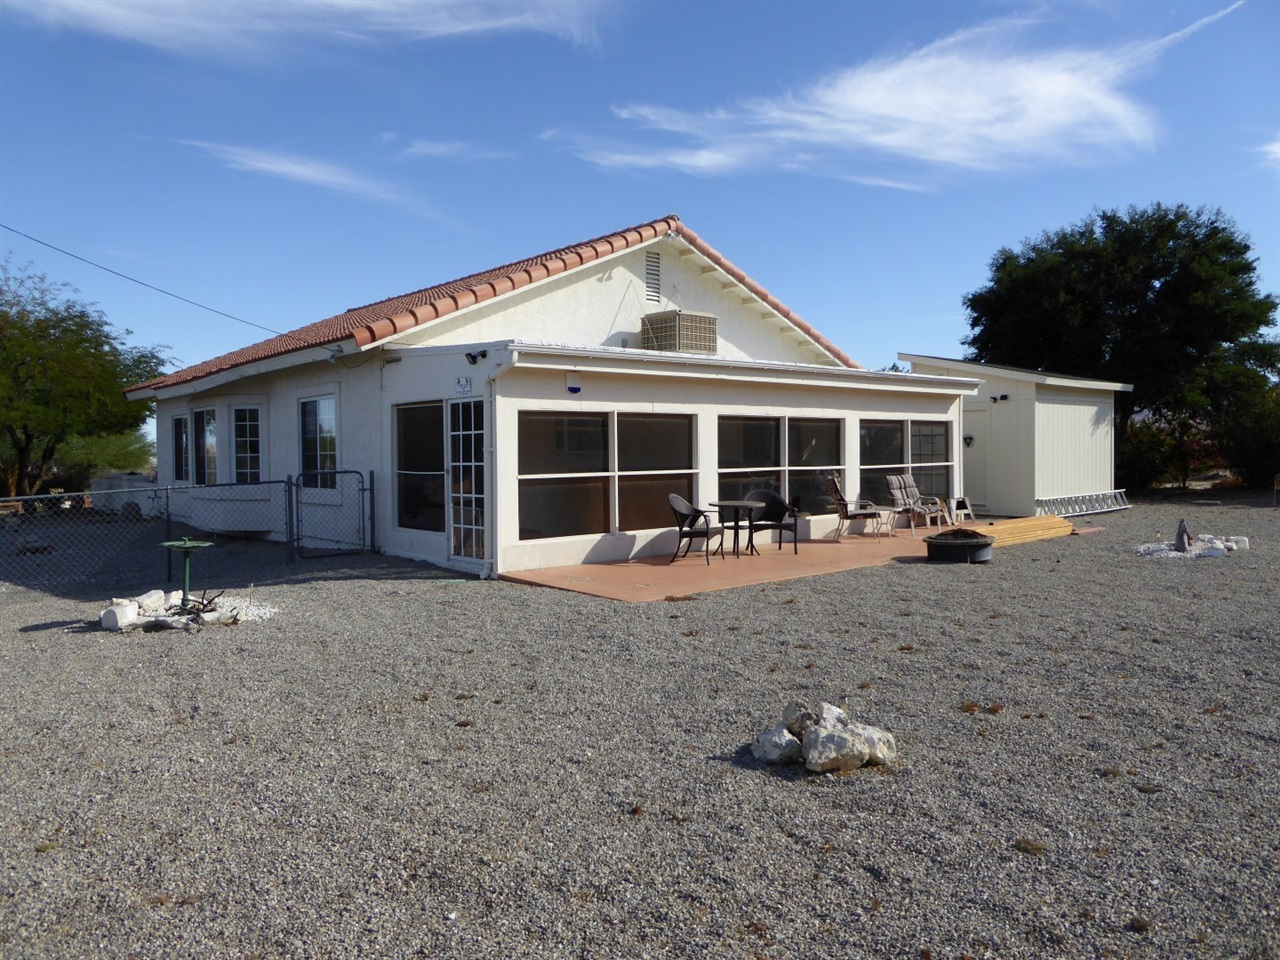 3212 Double O Rd, Borrego Springs, CA